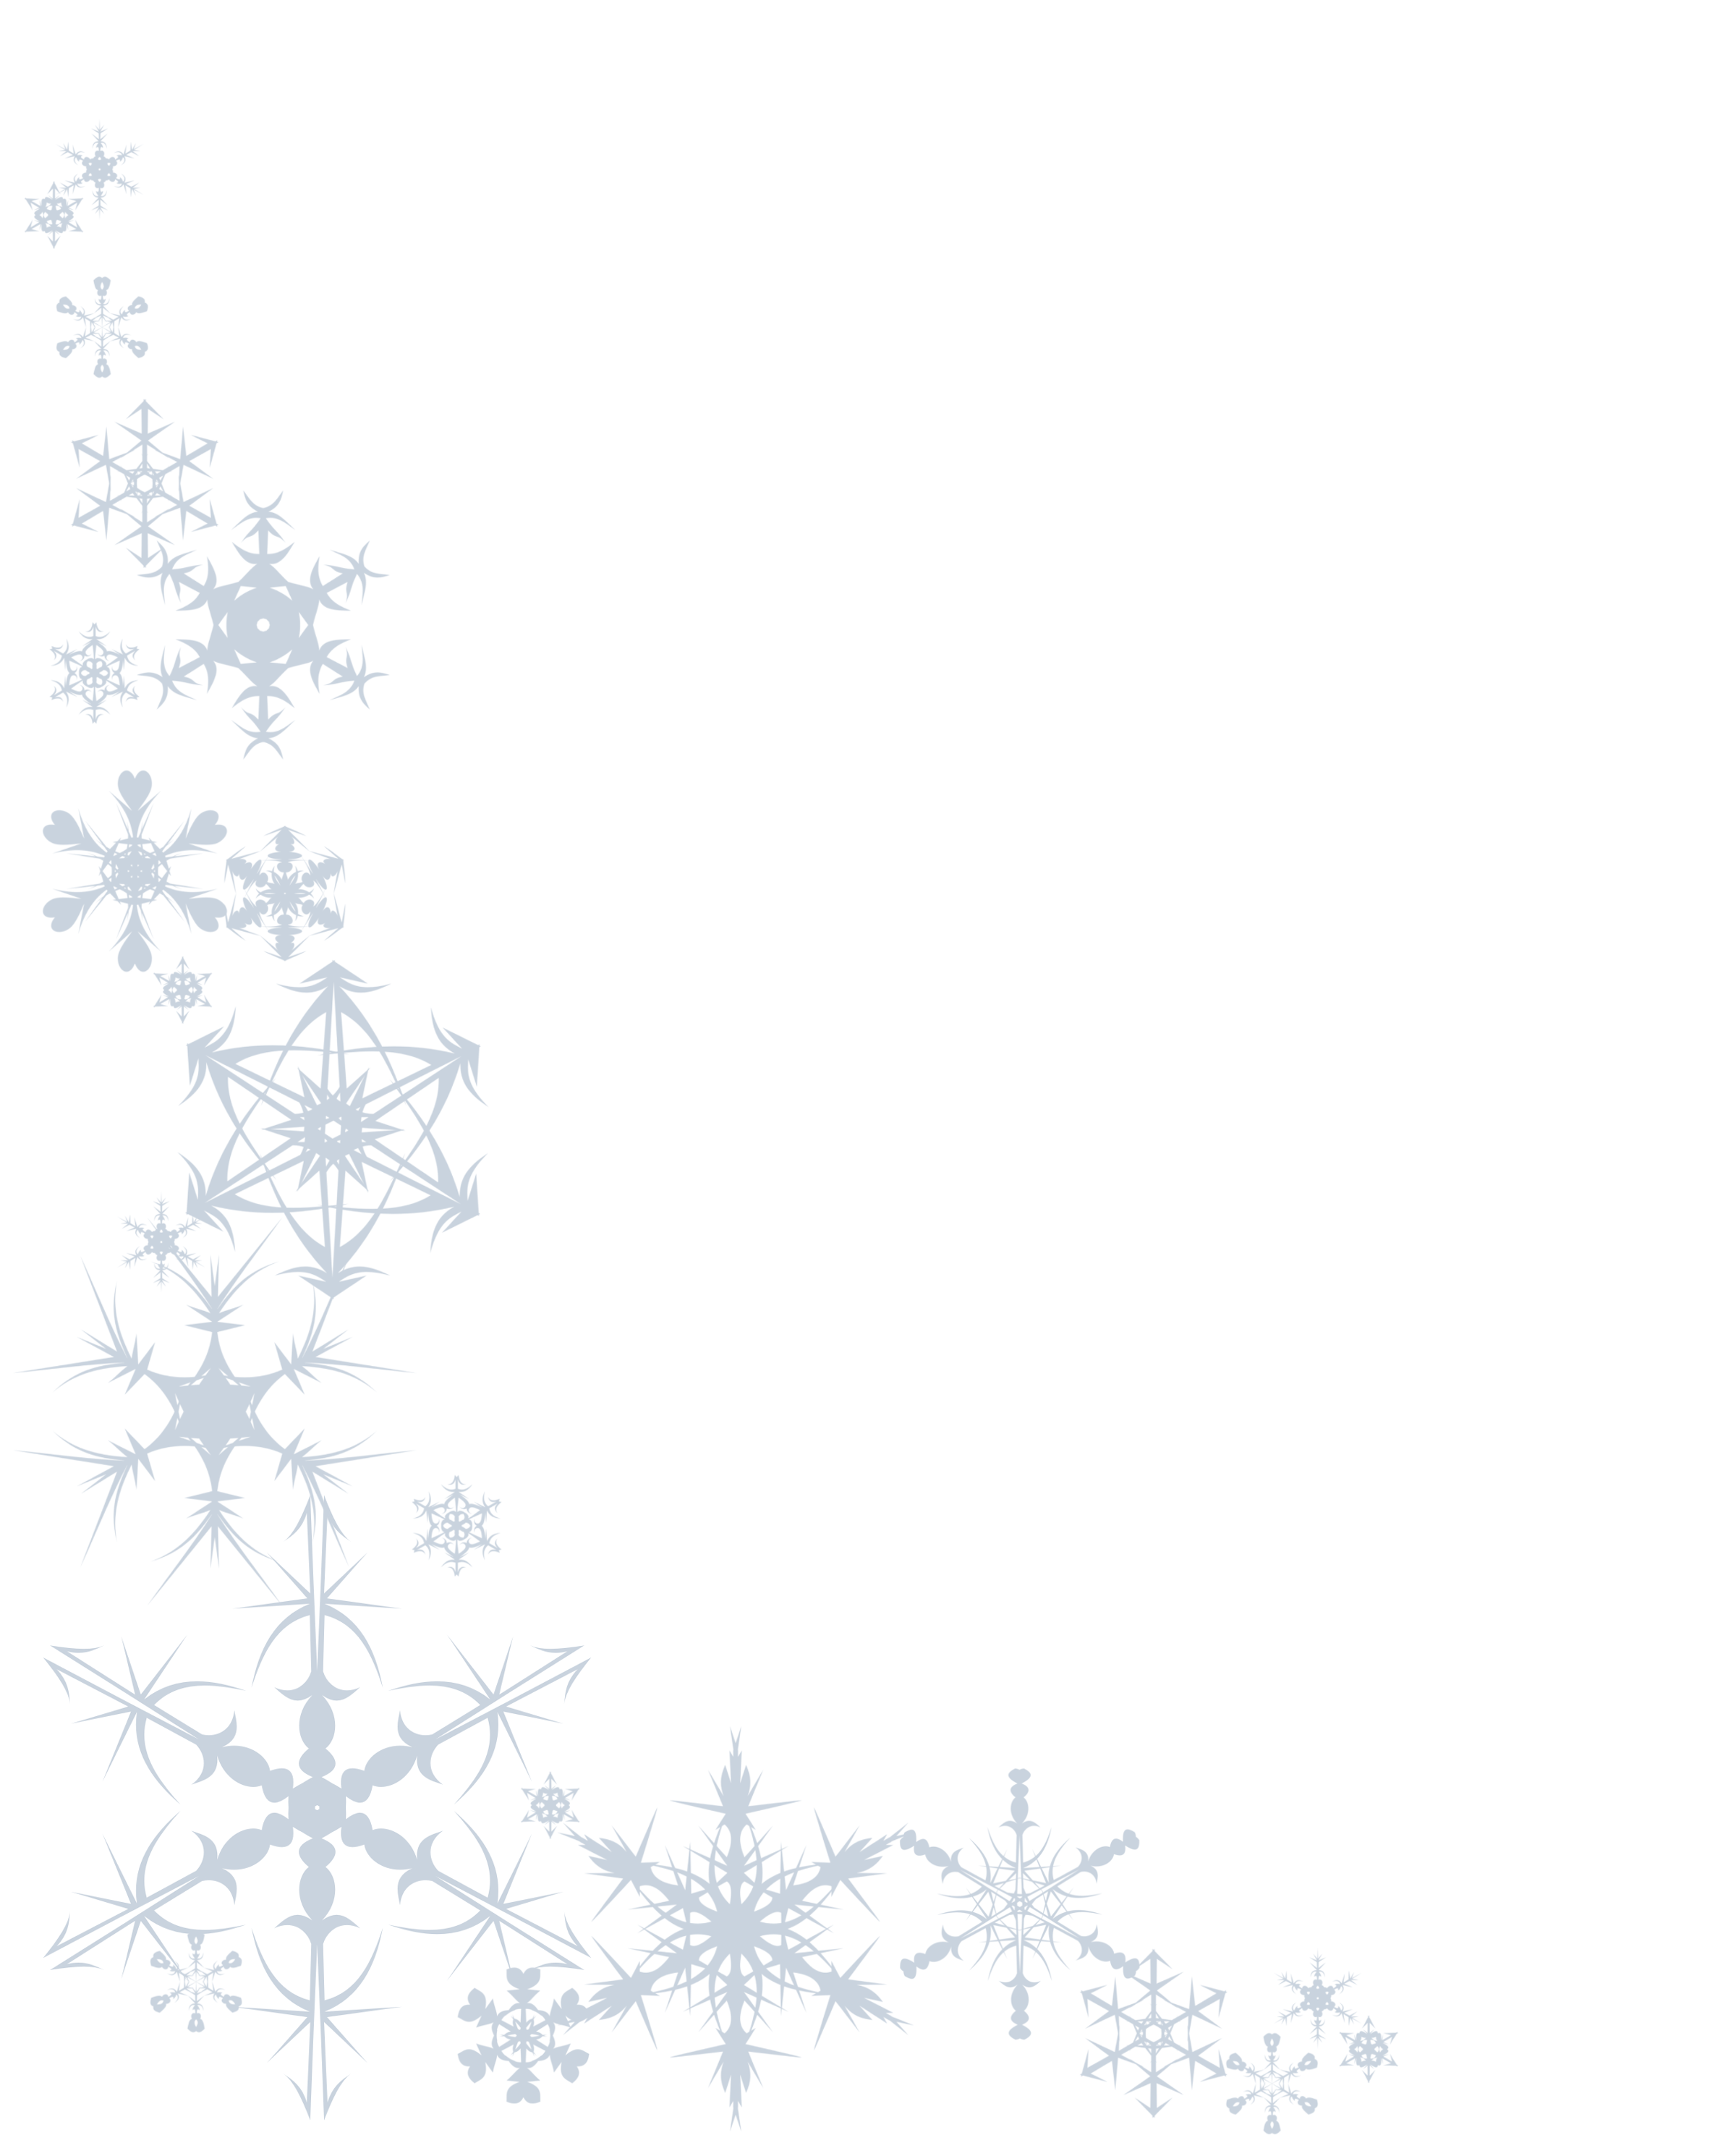 banner royalty free library Snowflake borders clipart. Free transparent border download